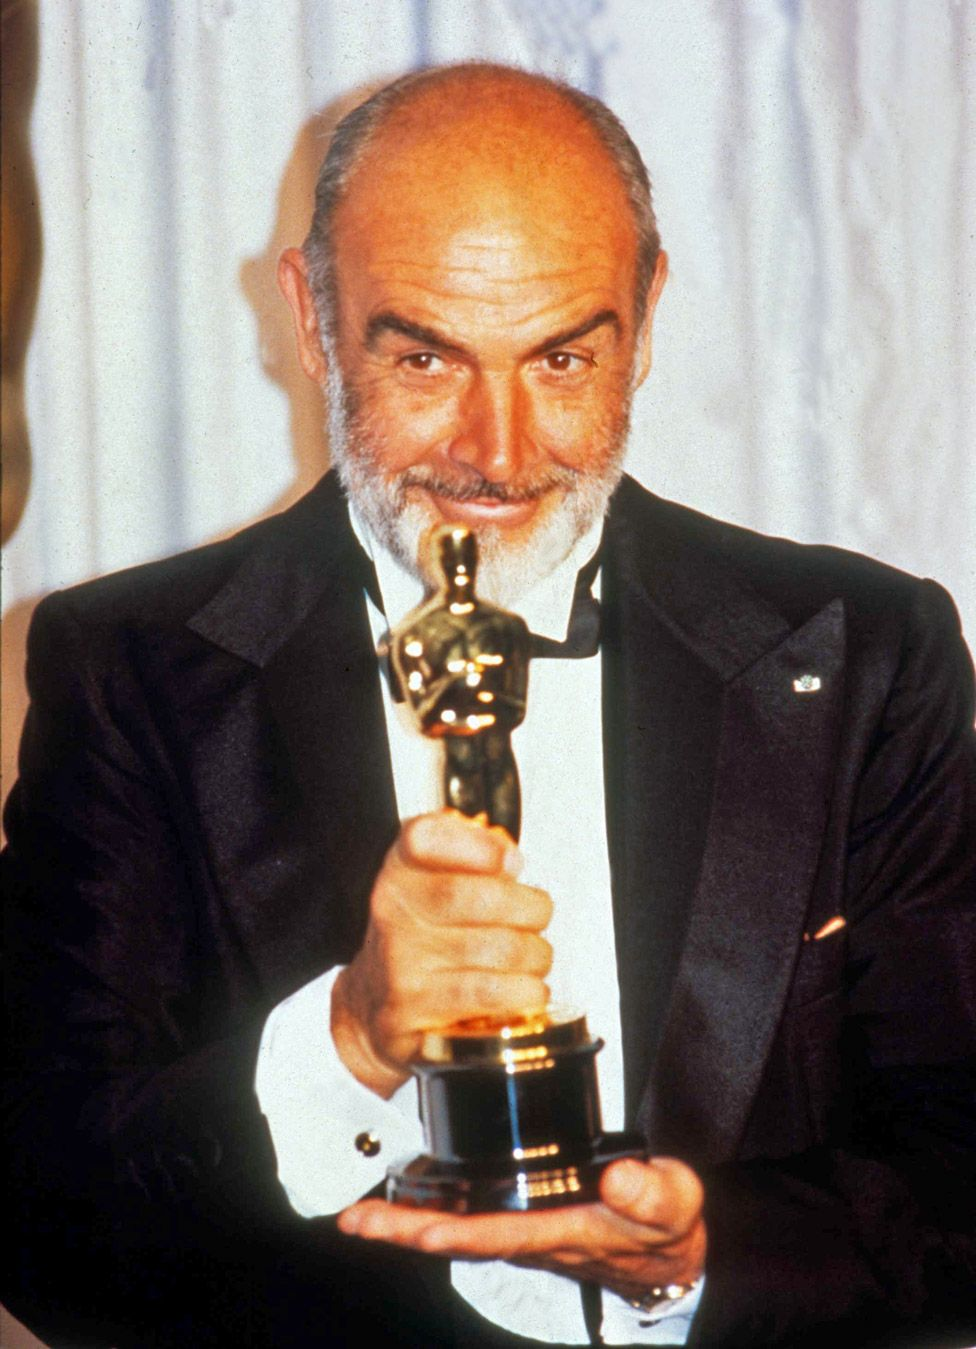 Sean Connery at the 1988 Oscars